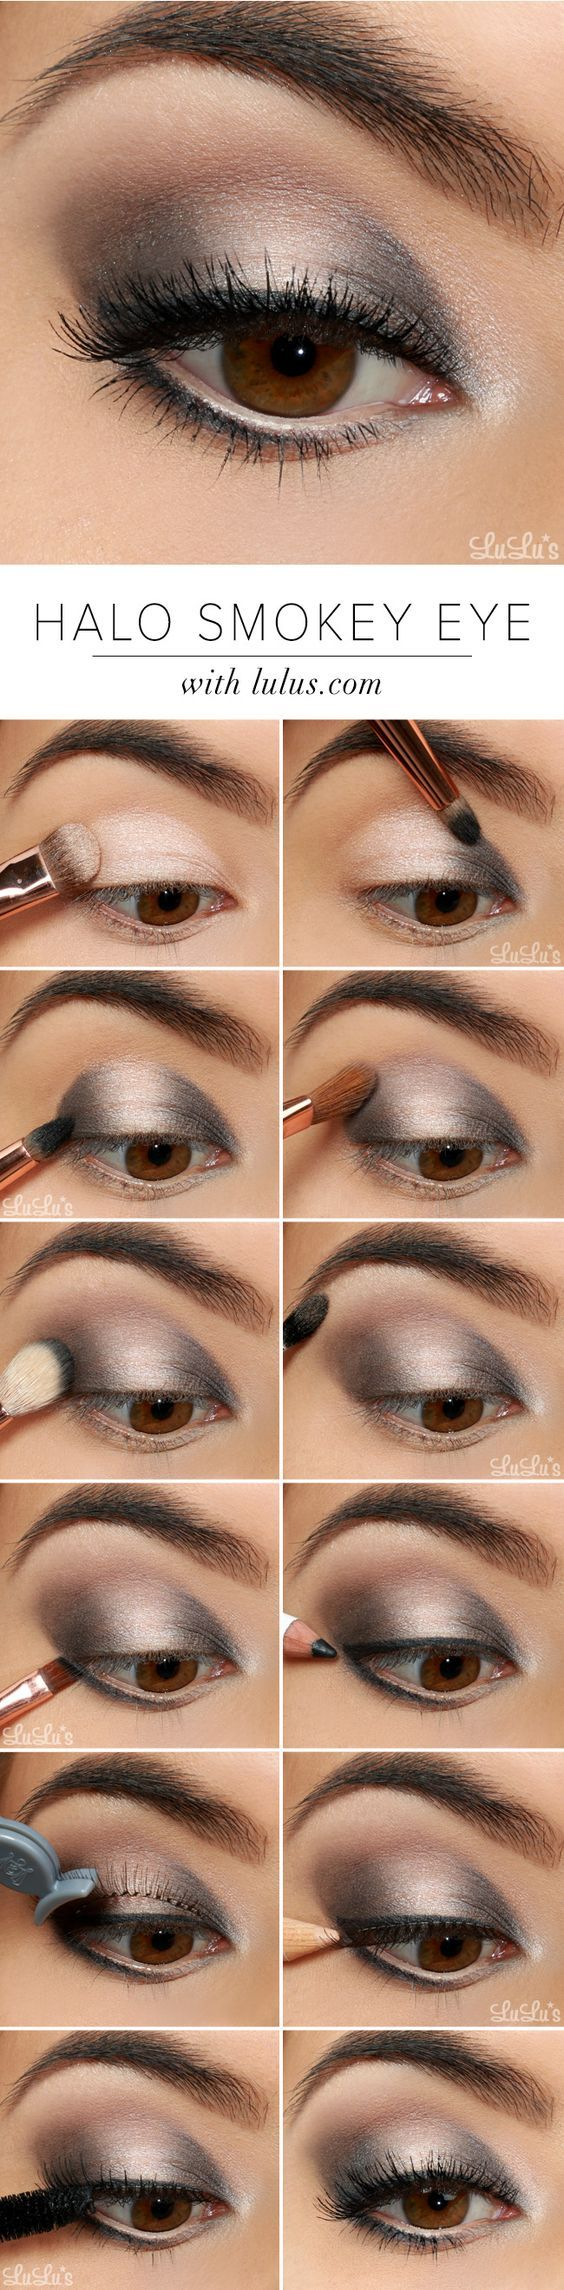 11 Easy Step By Step Makeup Tutorials For Beginners Eye Makeup